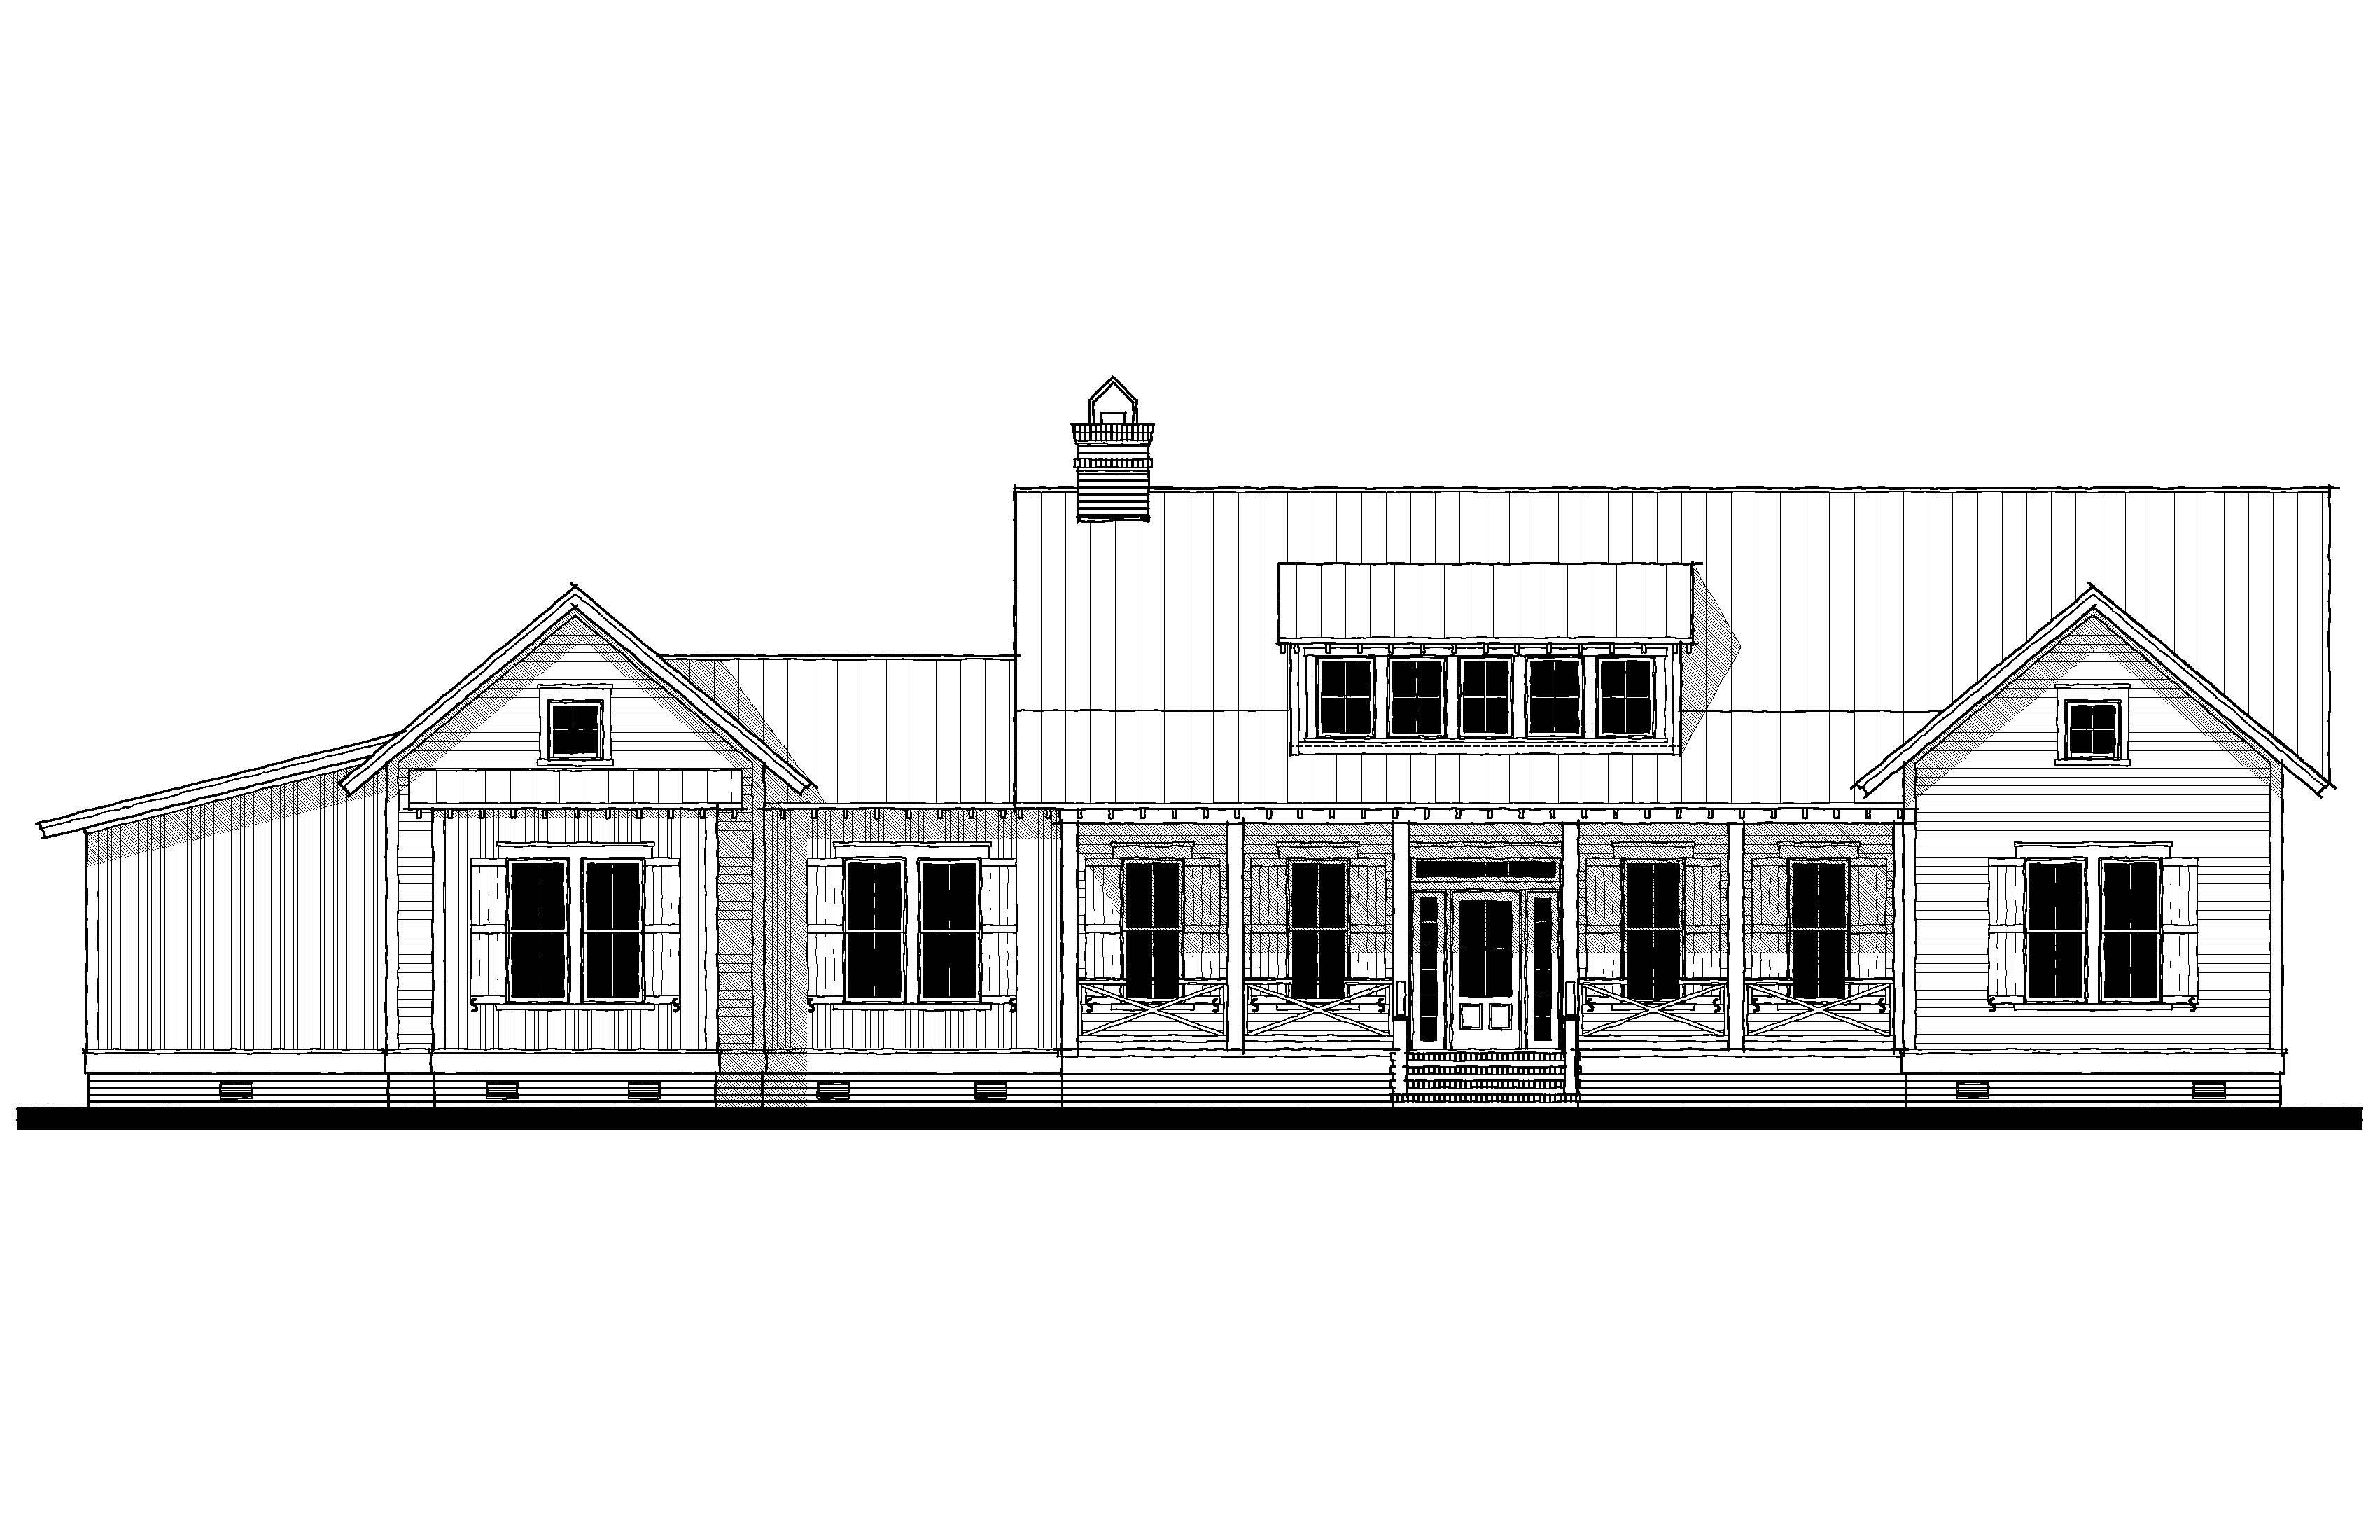 Different Design Of Houses Local on size of houses, beautiful design of houses, modern design of houses, bad design of houses, different roof designs, color of houses, different design cars, cool design of houses, world design of houses, different house plans designs,